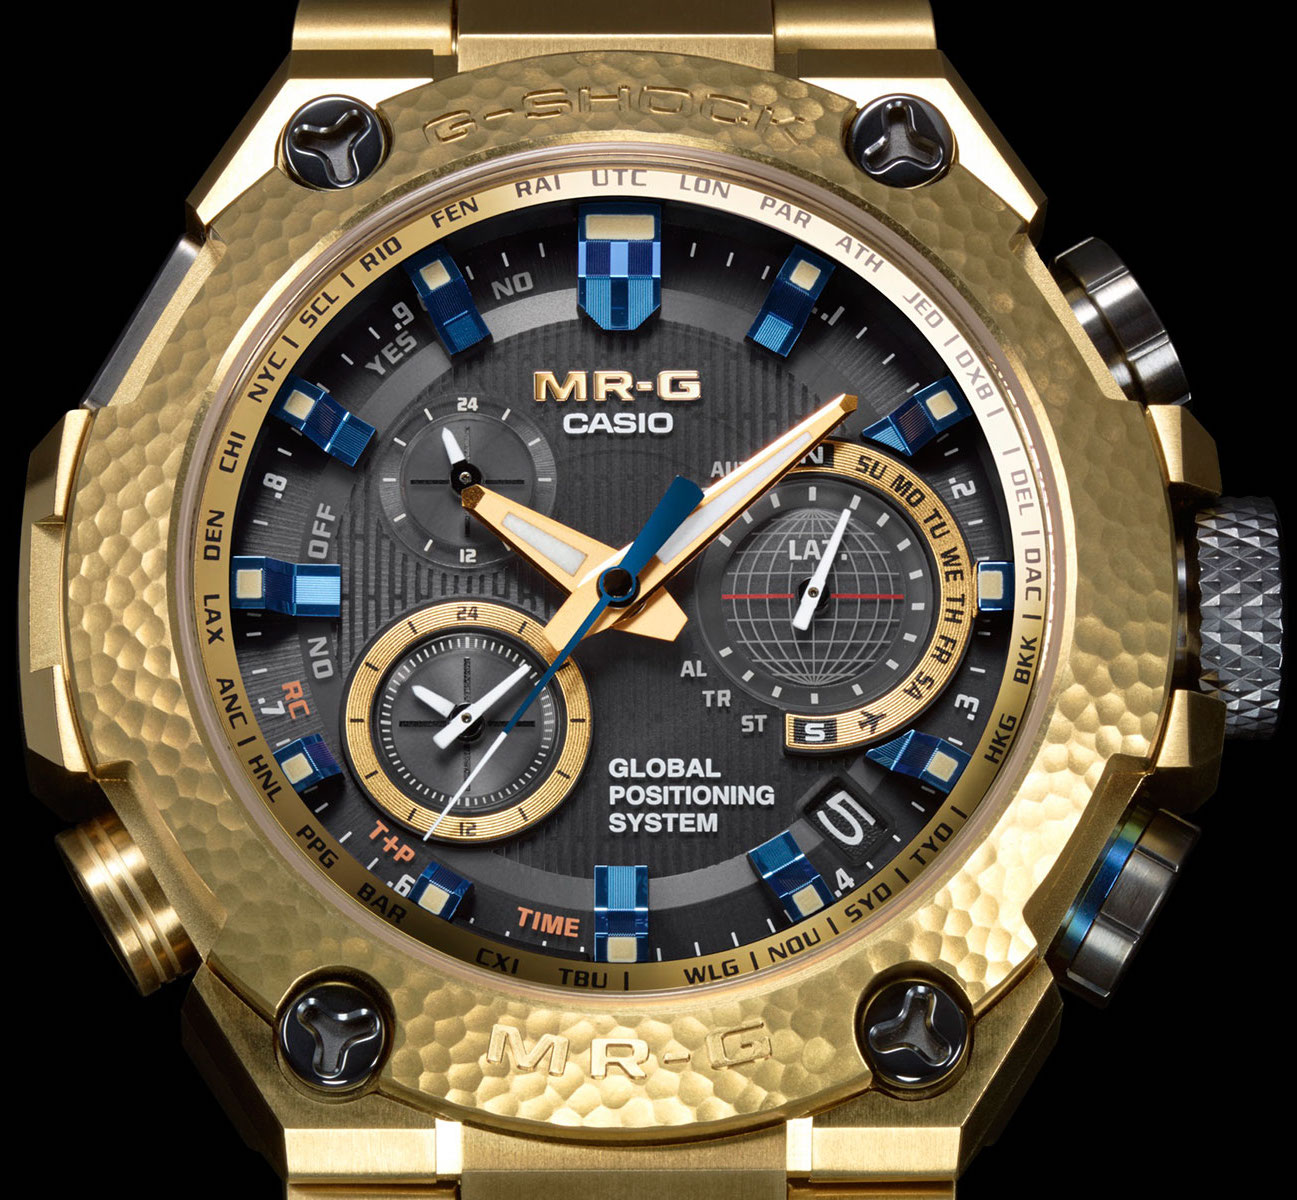 For $6200 you can own one of only 300 Casio G-Shock MRGG1000HG-9A, with only 10 available to the US. Each Casio G-Shock MRGG1000HG-9A Limited Edition MR-G Hybrid is handcrafted using the traditional Japanese Tsu-i-ki technique; a traditional craft method that creates unique relief patterns through hammering.